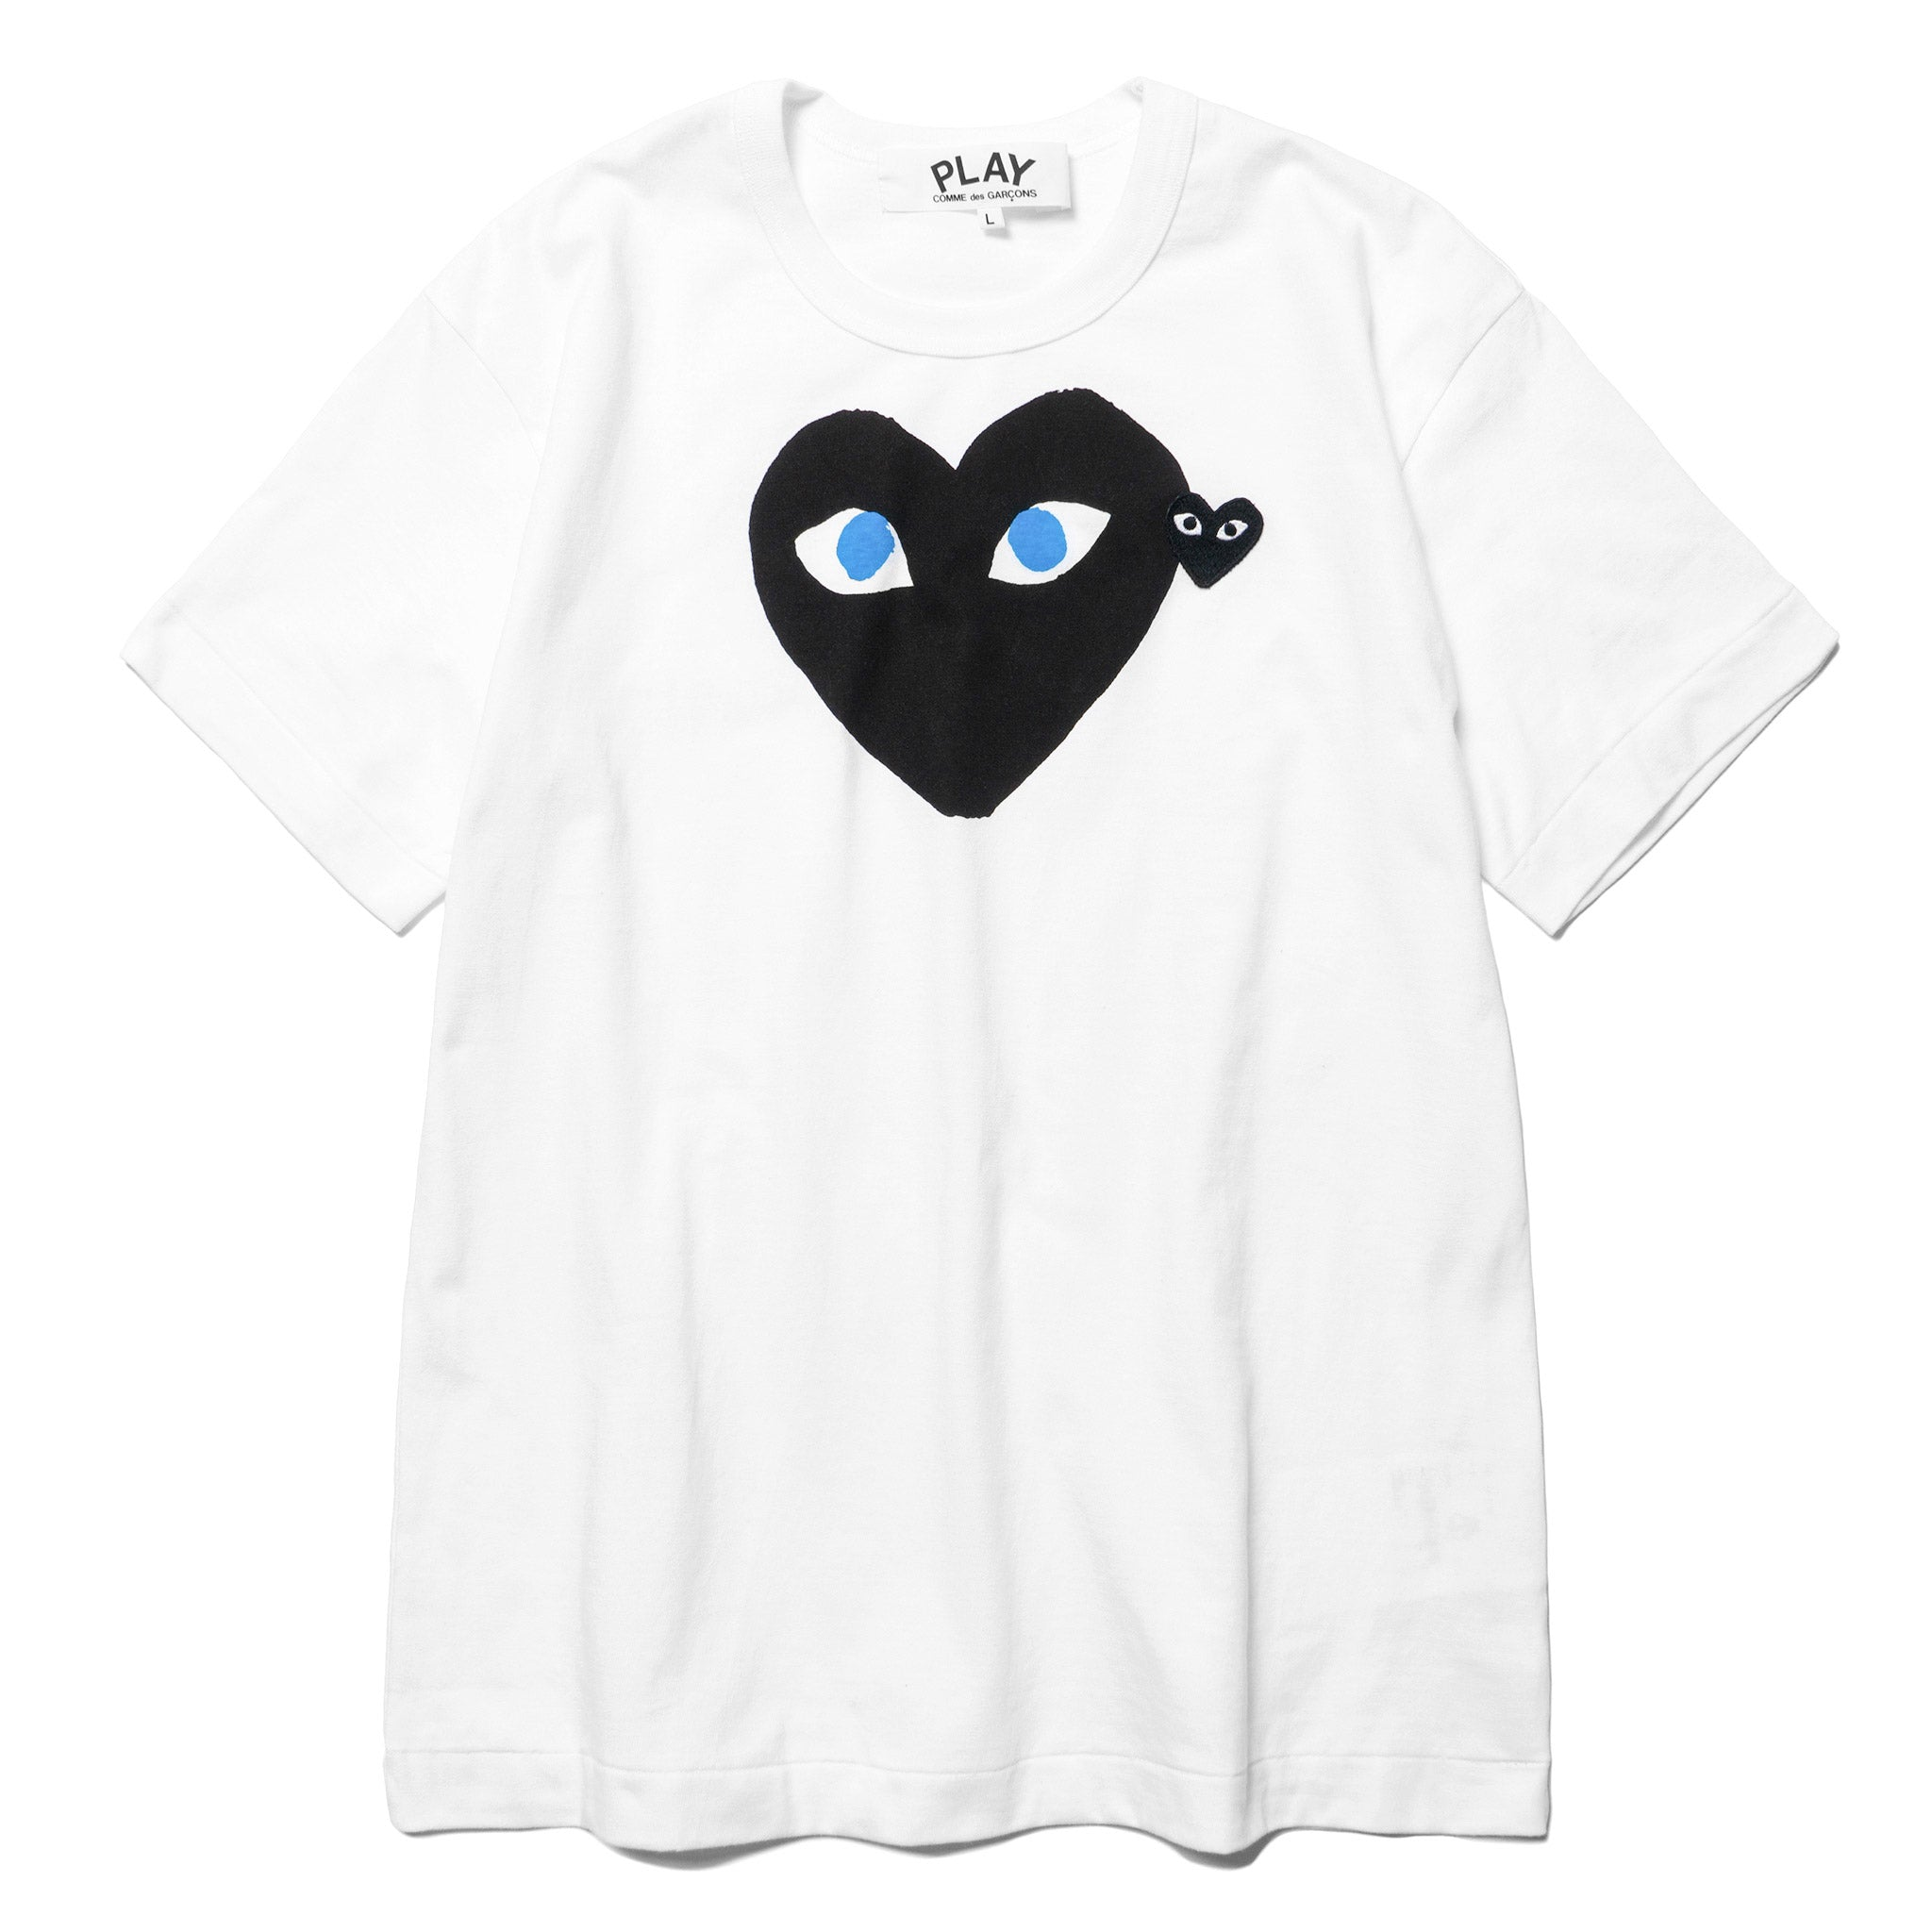 92ff3d82b384 HAVEN-Comme-Des-Garcons-PLAY-Print-Blue-Eye-Black-Heart-Black-Embem-Tee- T008 -WHITE-1.jpg v 1542900318